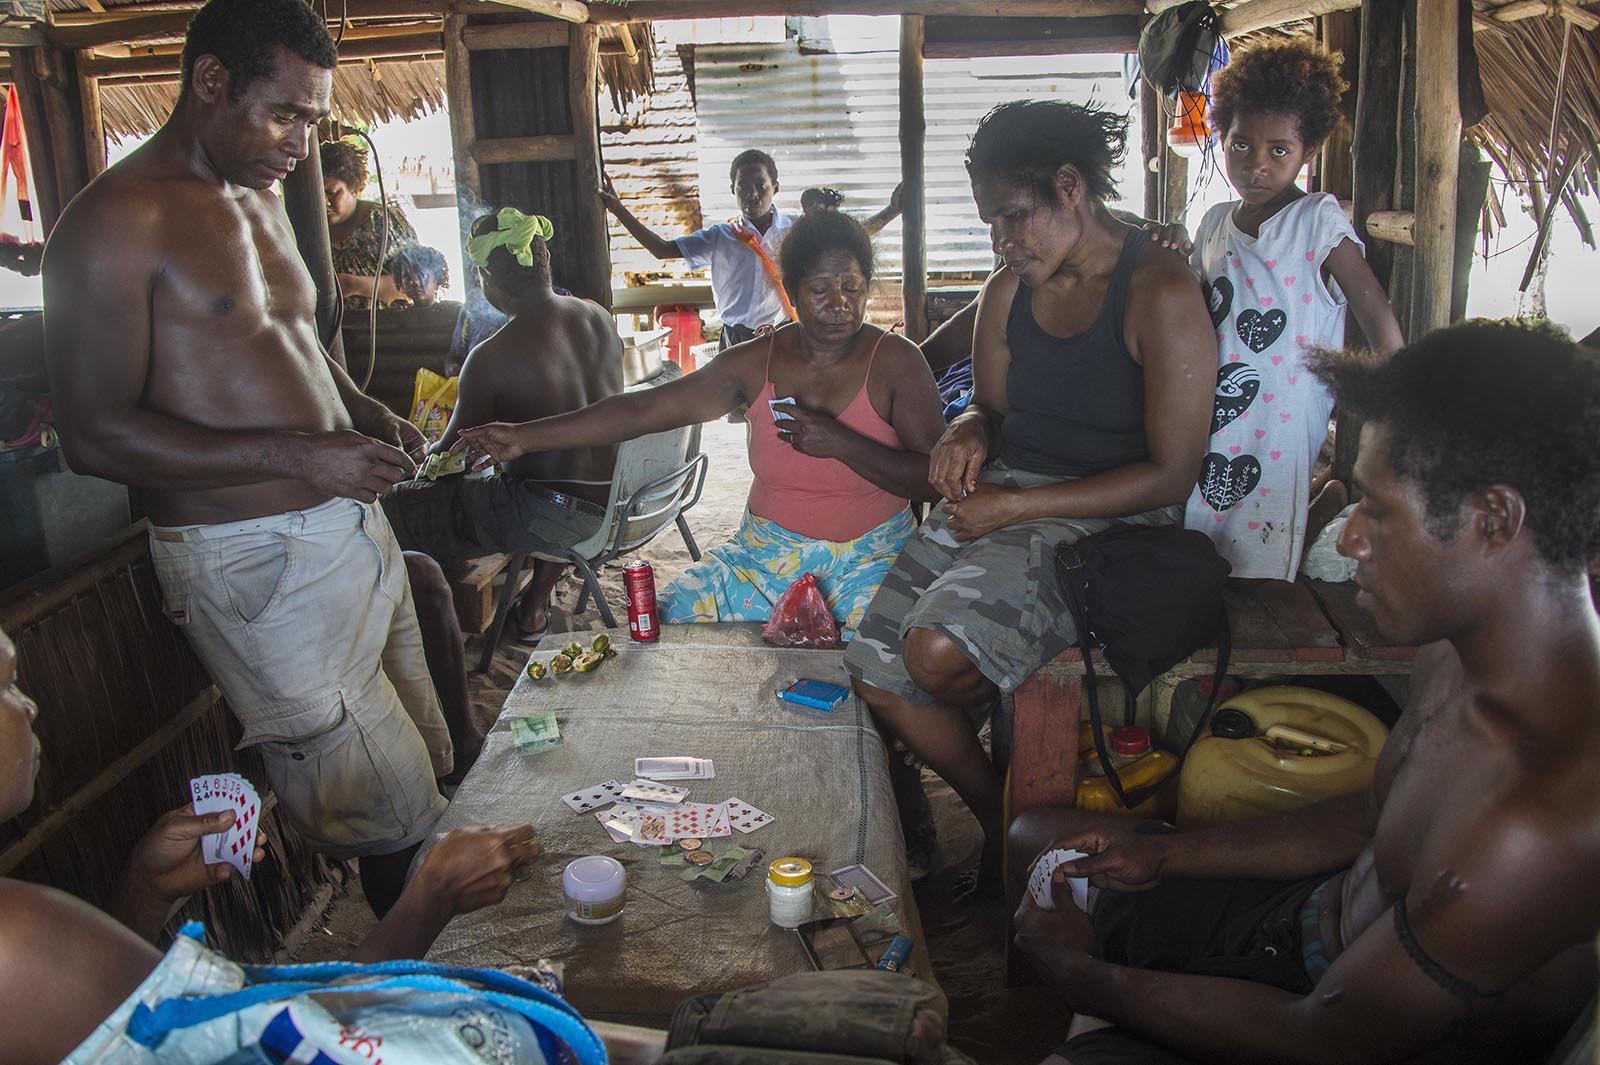 Residents of the village of Mokereng - just across the bay from the Lombrum refugee detention centre - pass the time playing cards. © Brian Cassey